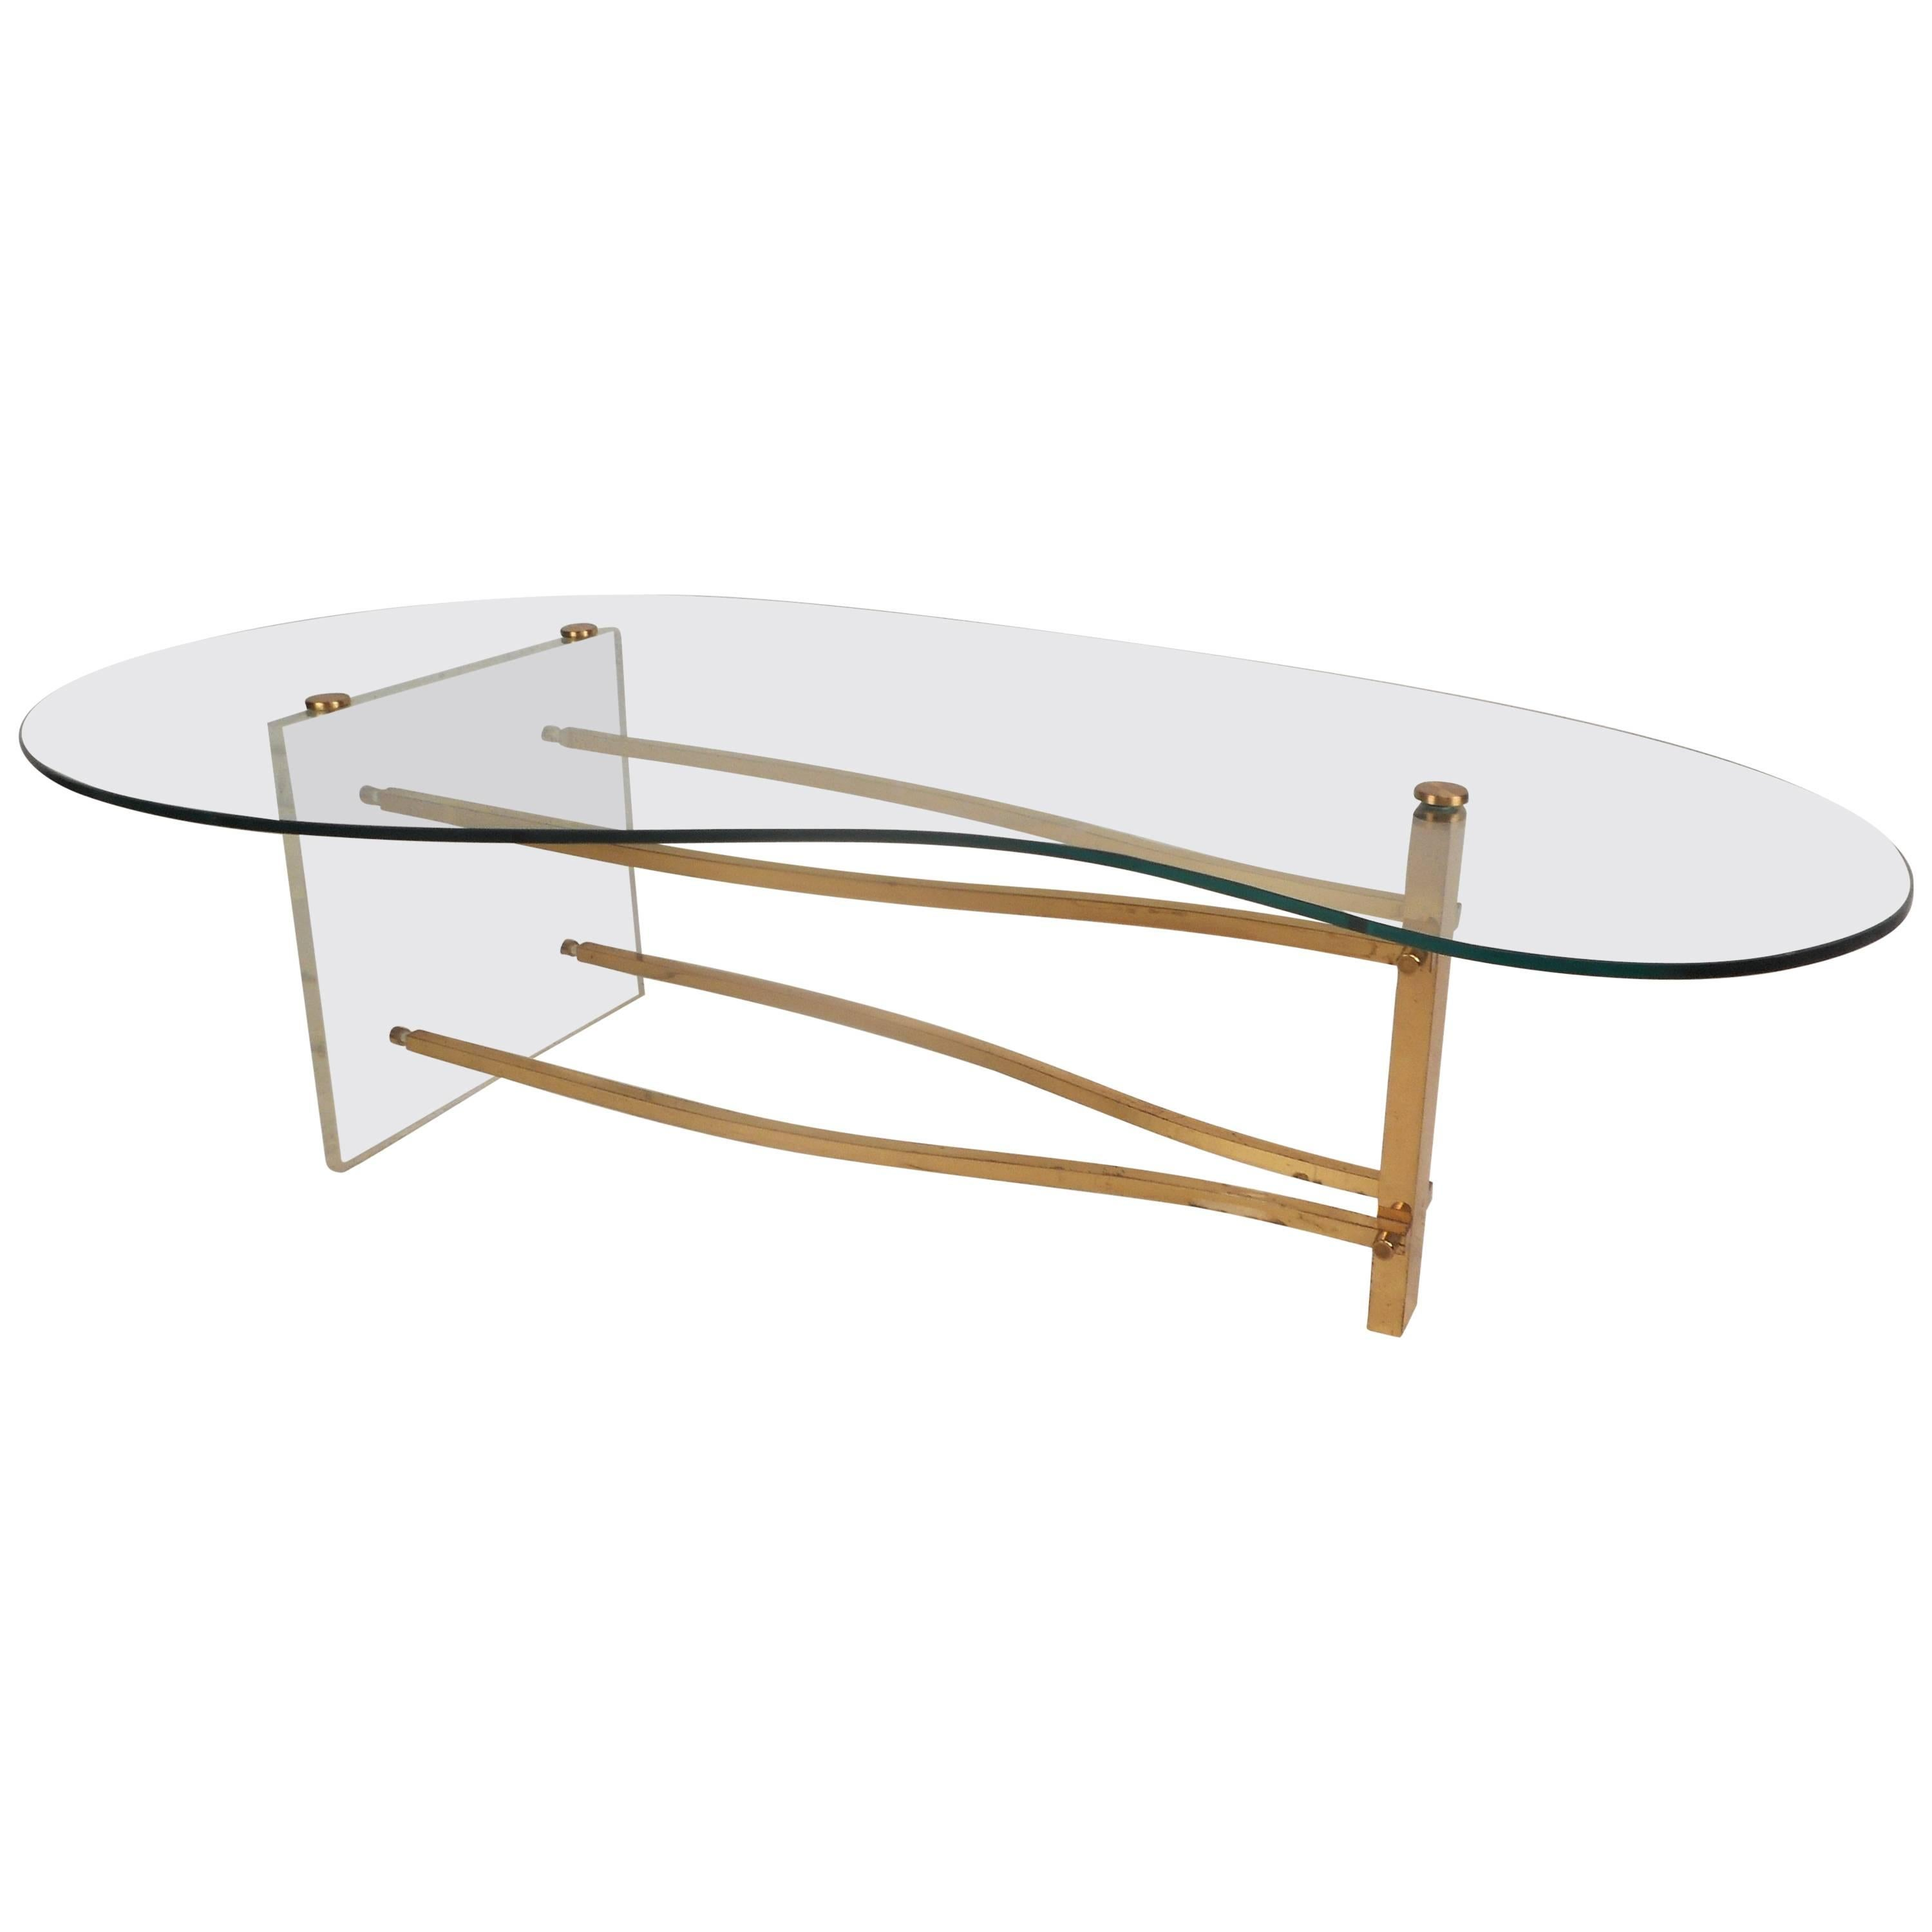 Fantastically Simple Frosted Lucite Wave Coffee Table Mid Century Modern For